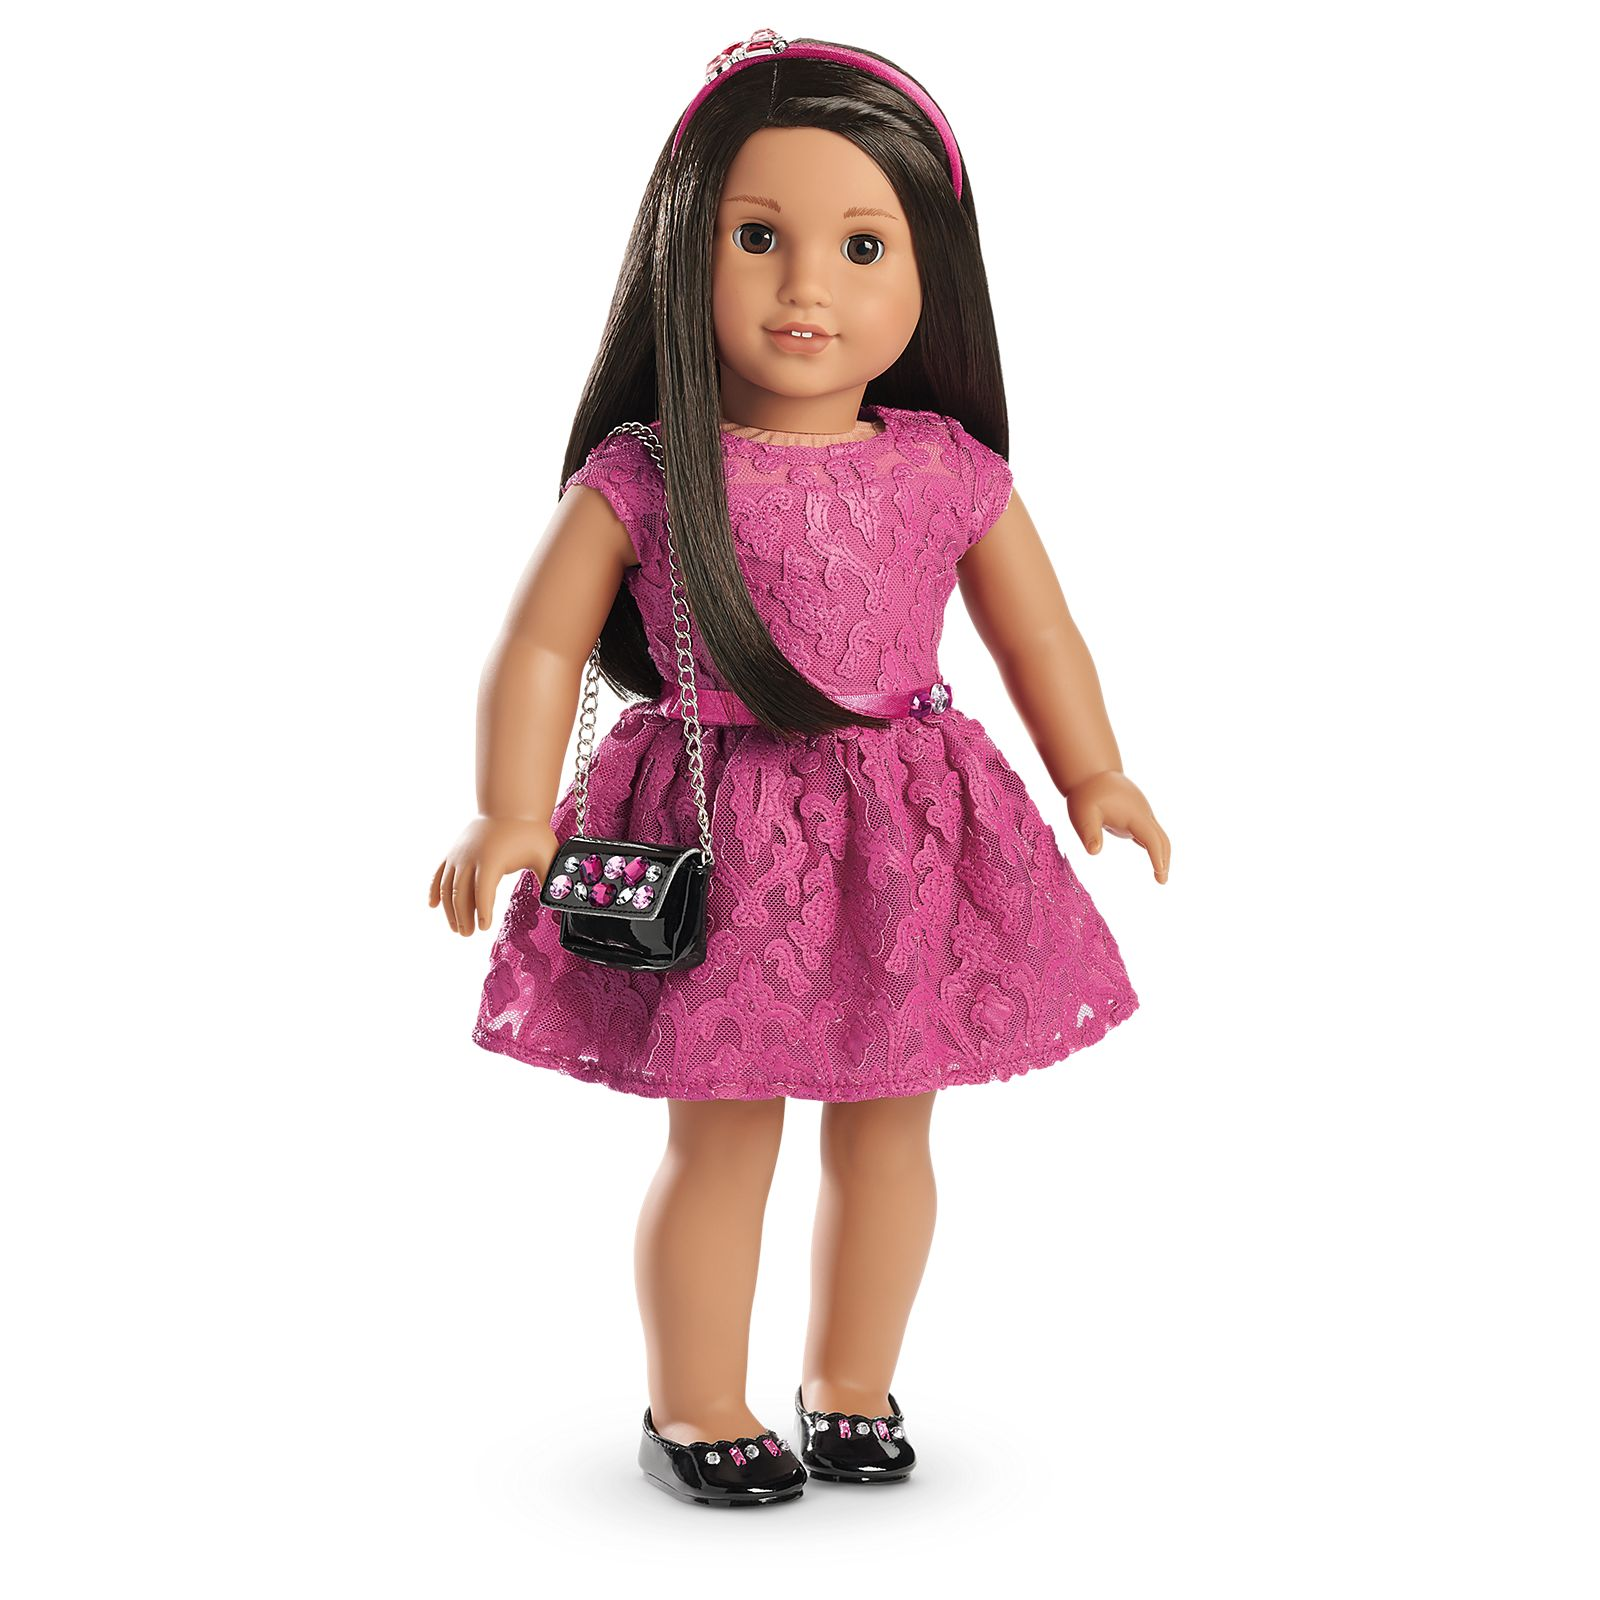 Magenta Lace Easter Dress Made For 18 Inch American Girl Doll Clothes